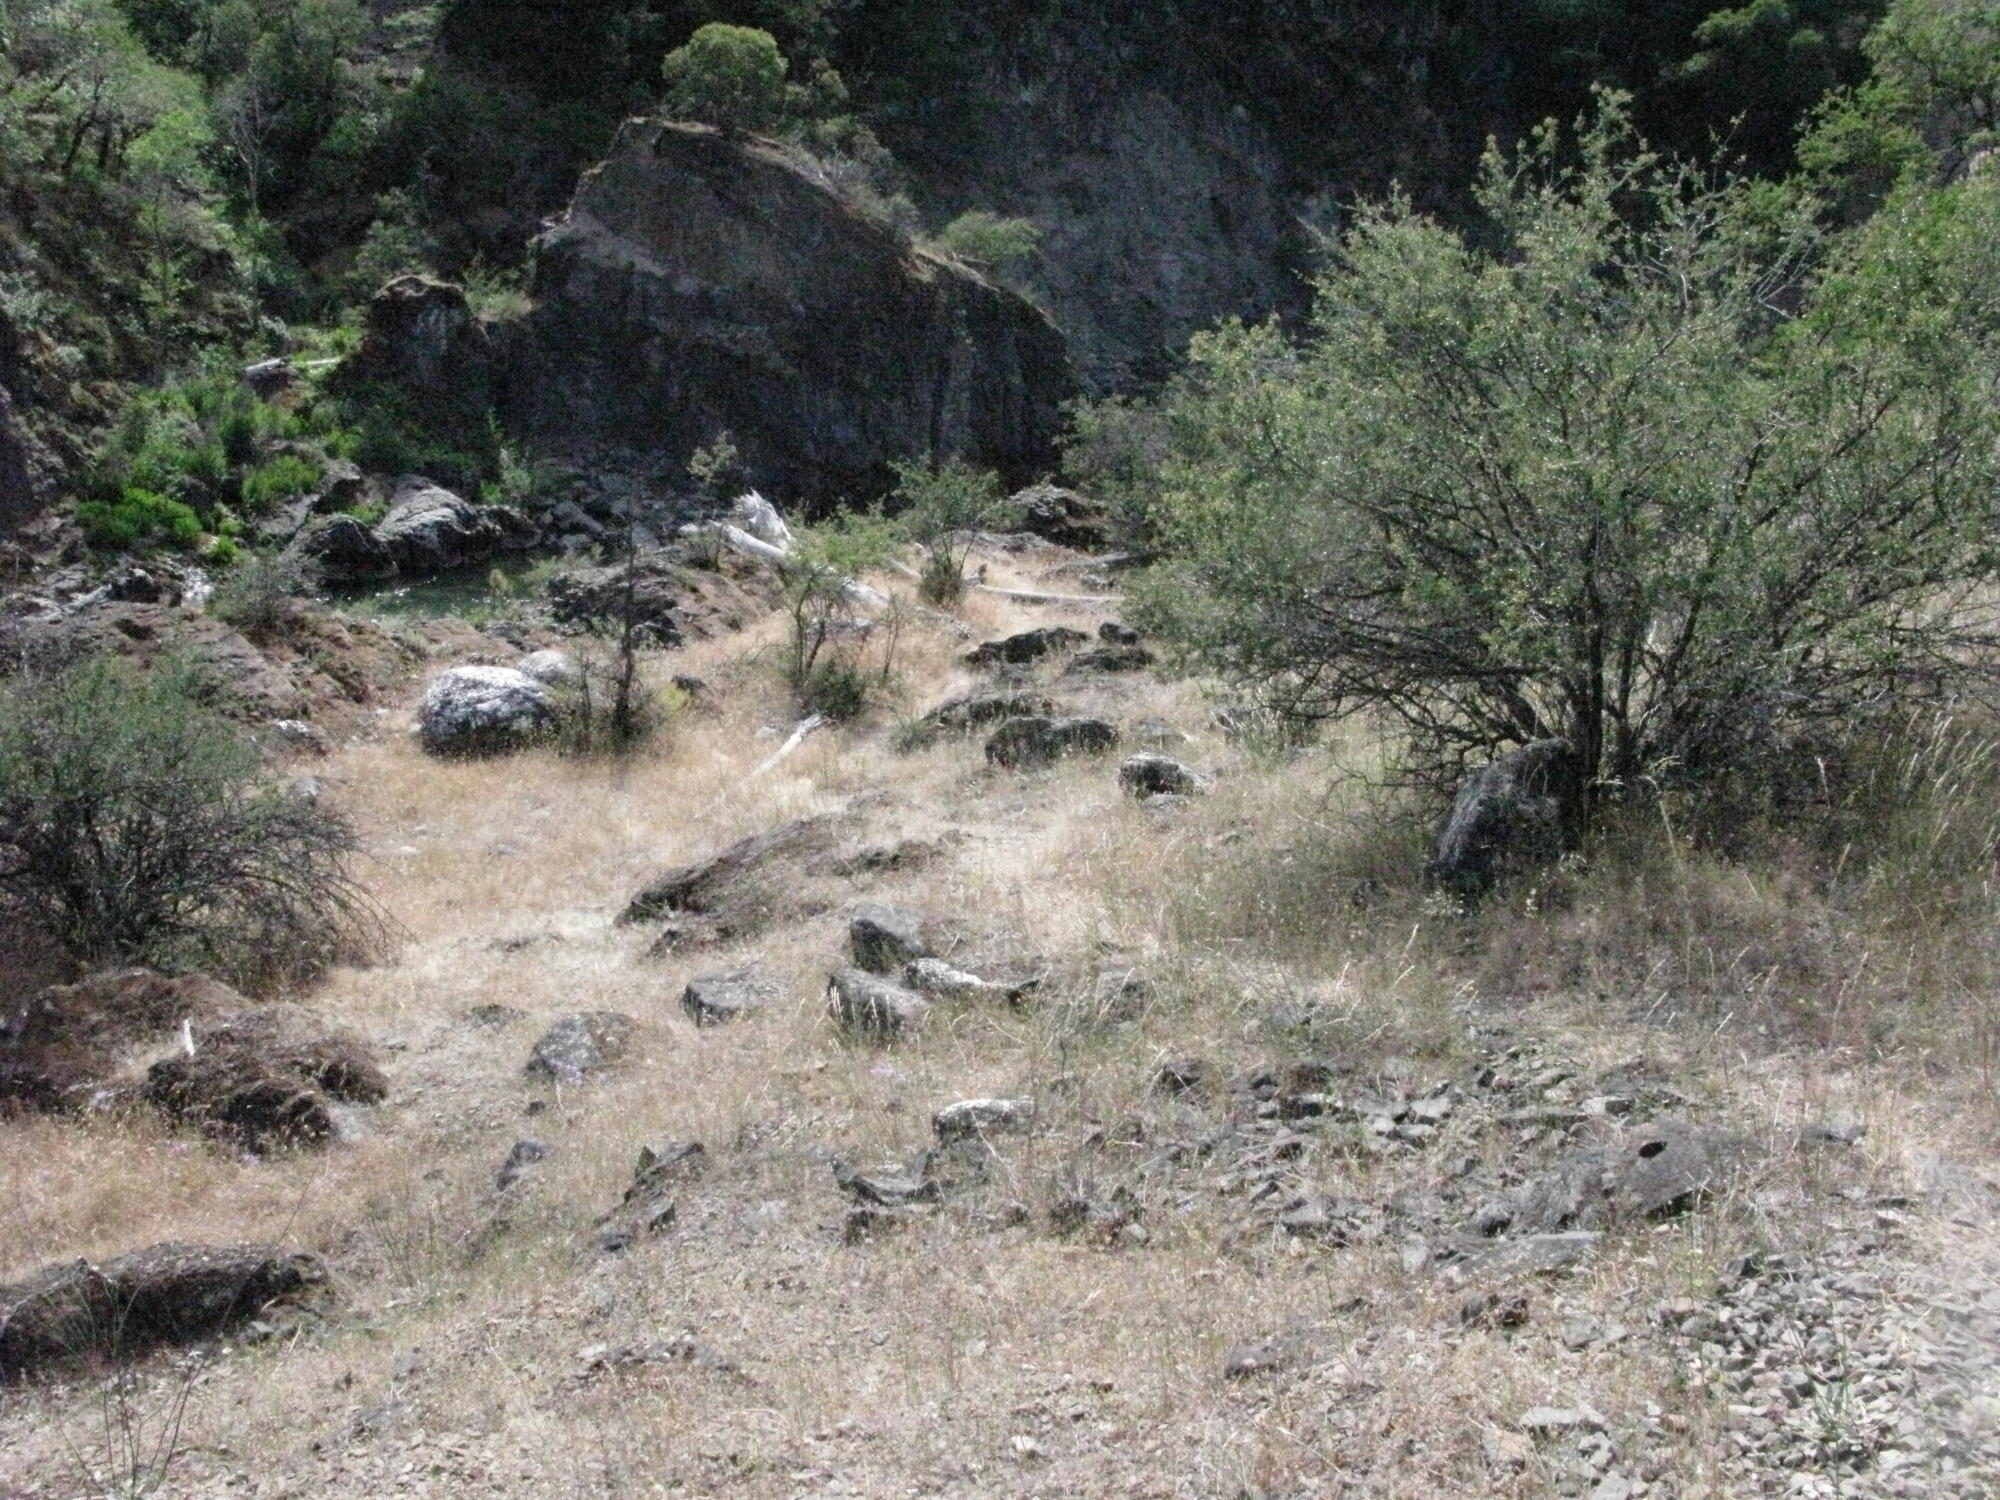 Rattlesnake Territory on Trail to the Eel River, Covelo Yoga and Healing Festival